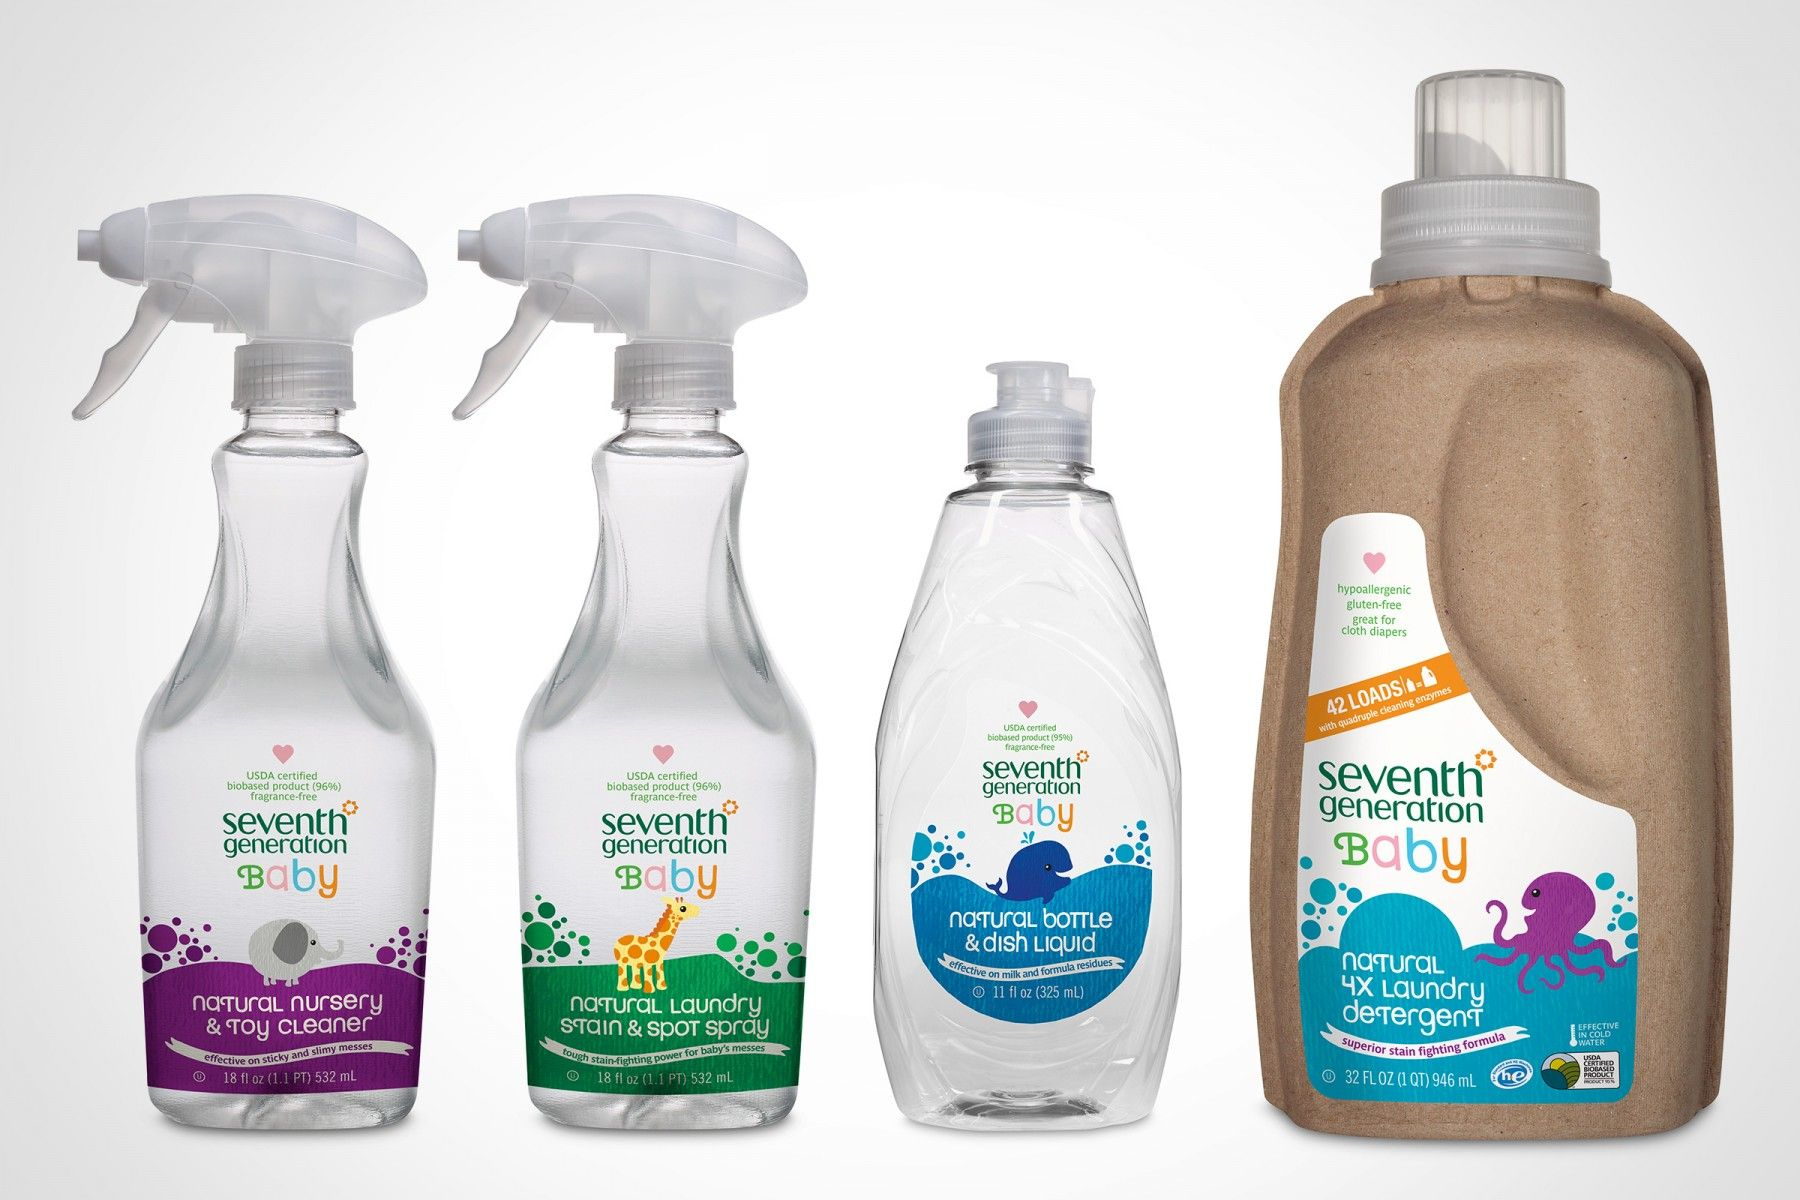 Seventh Generation Baby Solidarity Of Unbridled Labour Bottle